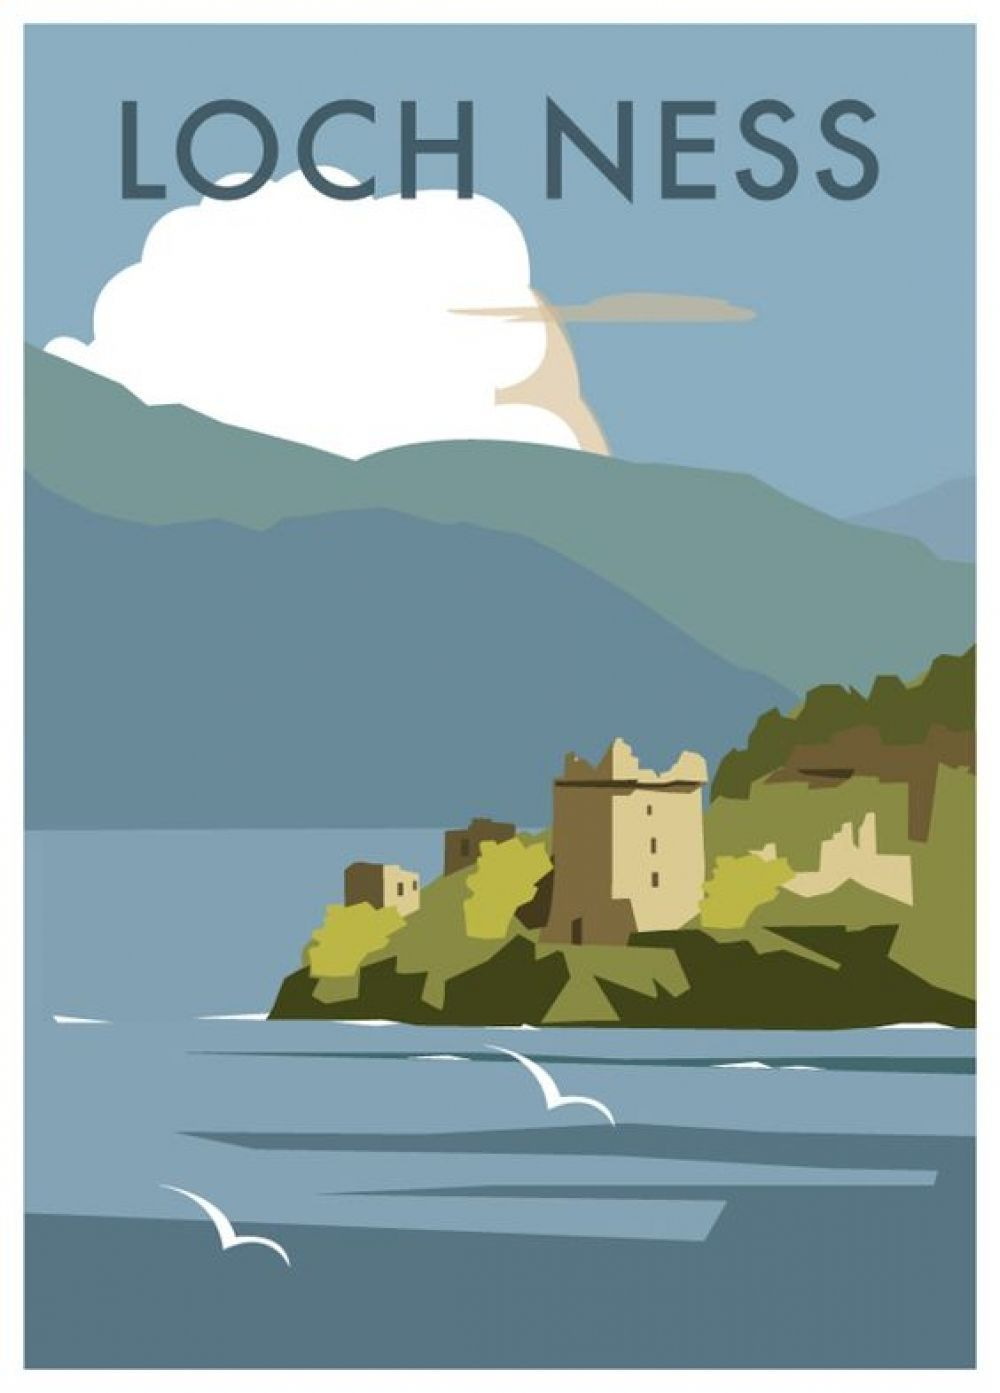 Great Home Decor Idea Vintage British Railway Travel Poster -  Great Home Decor Idea Vintage British...